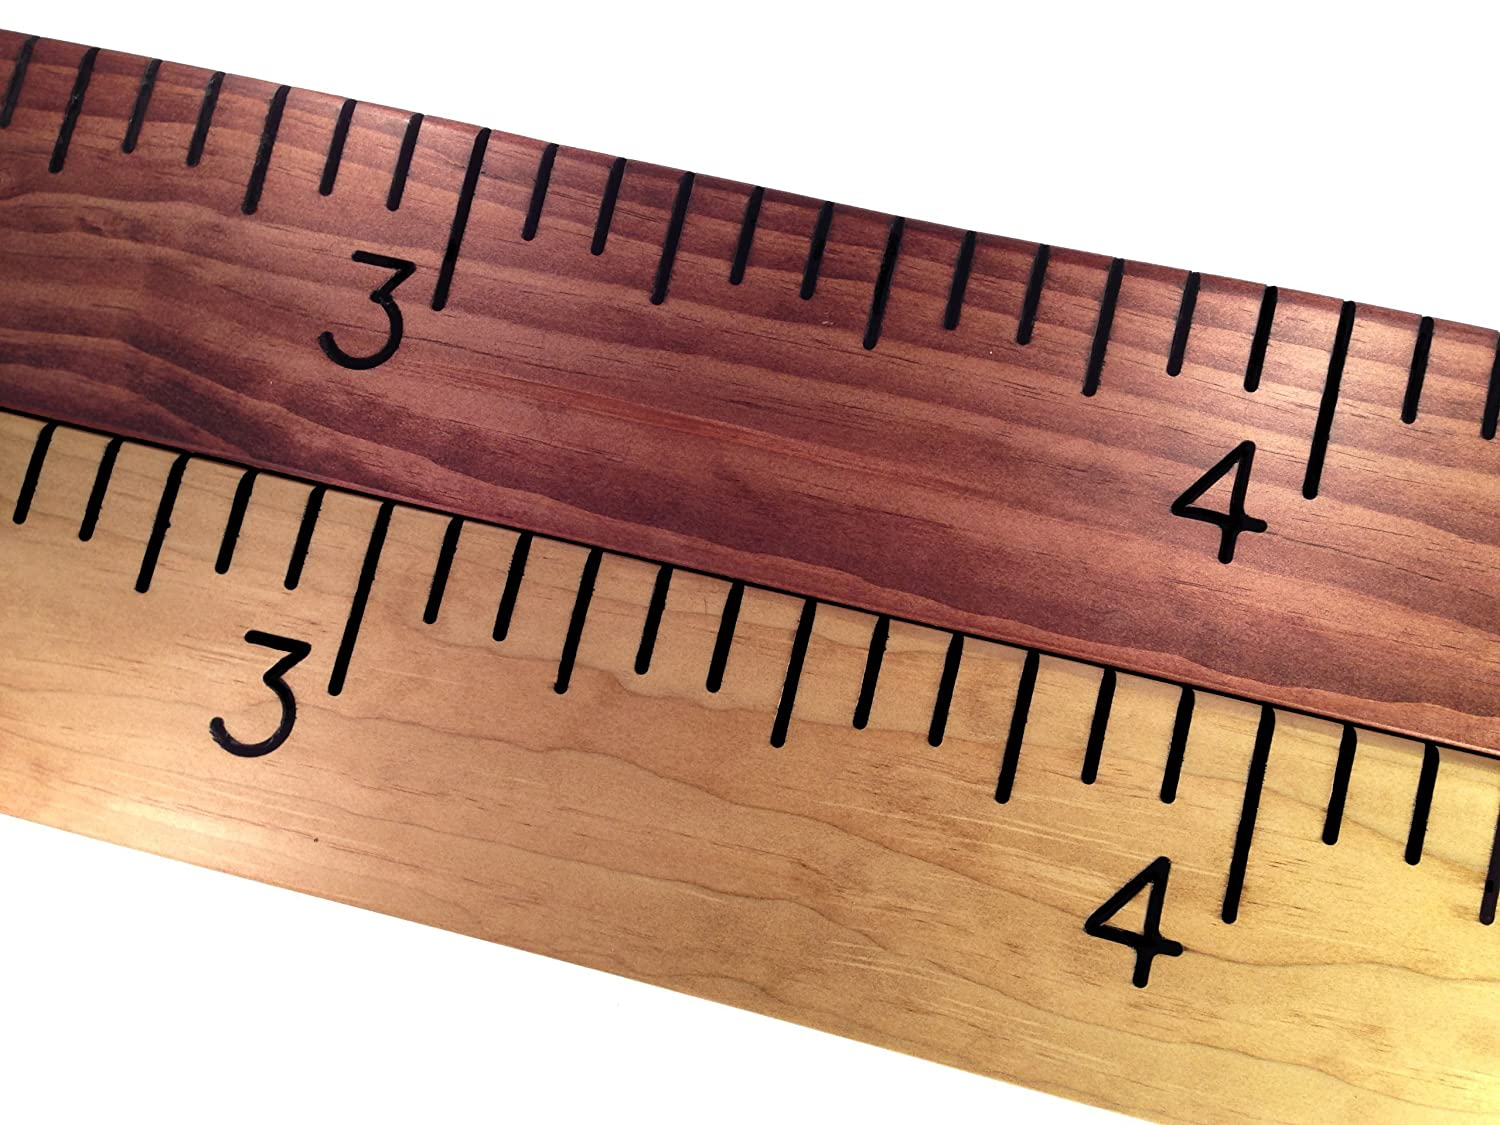 Amazon custom growth chart engraved personalized wooden ruler amazon custom growth chart engraved personalized wooden ruler measuring height stick routed handmade handmade nvjuhfo Gallery